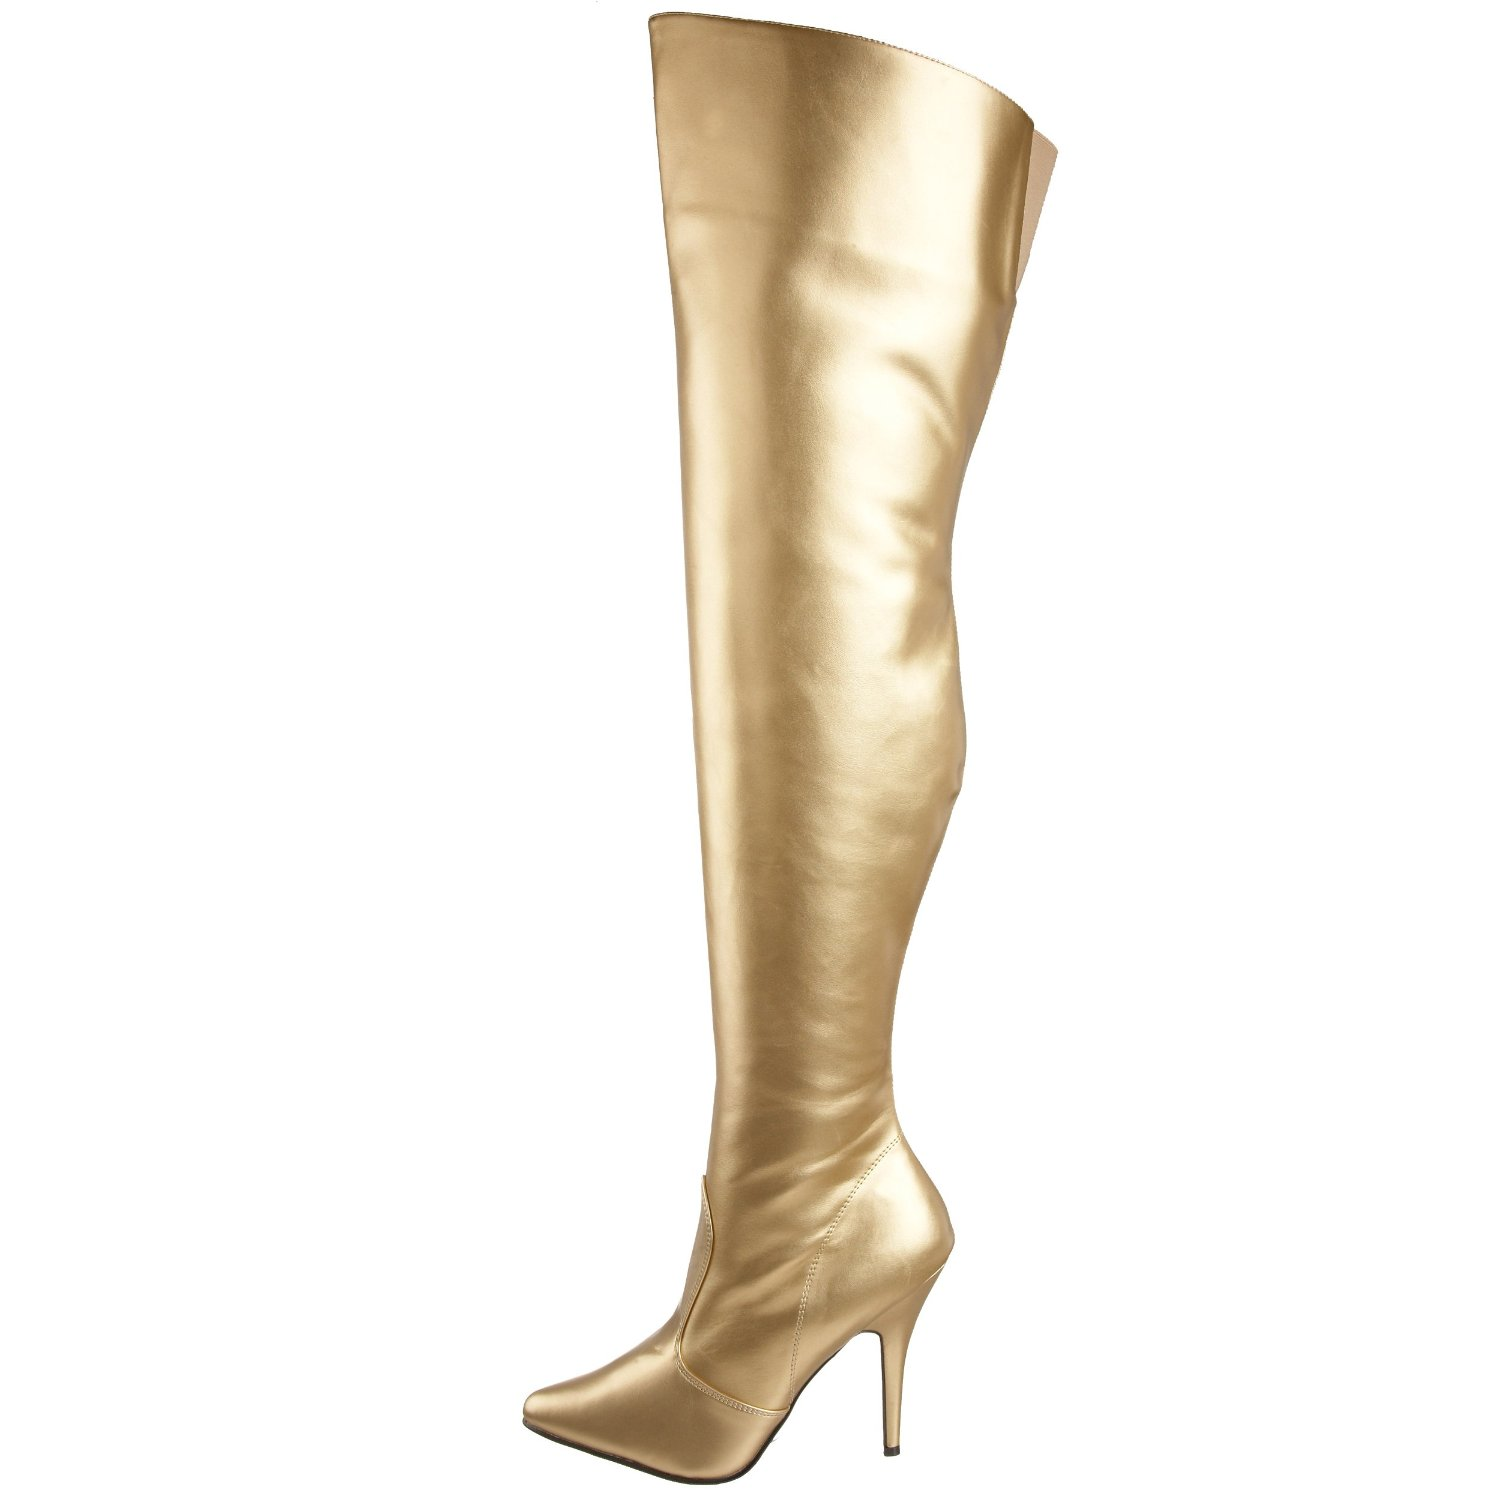 Gold Thigh High Boots bywvEI6J